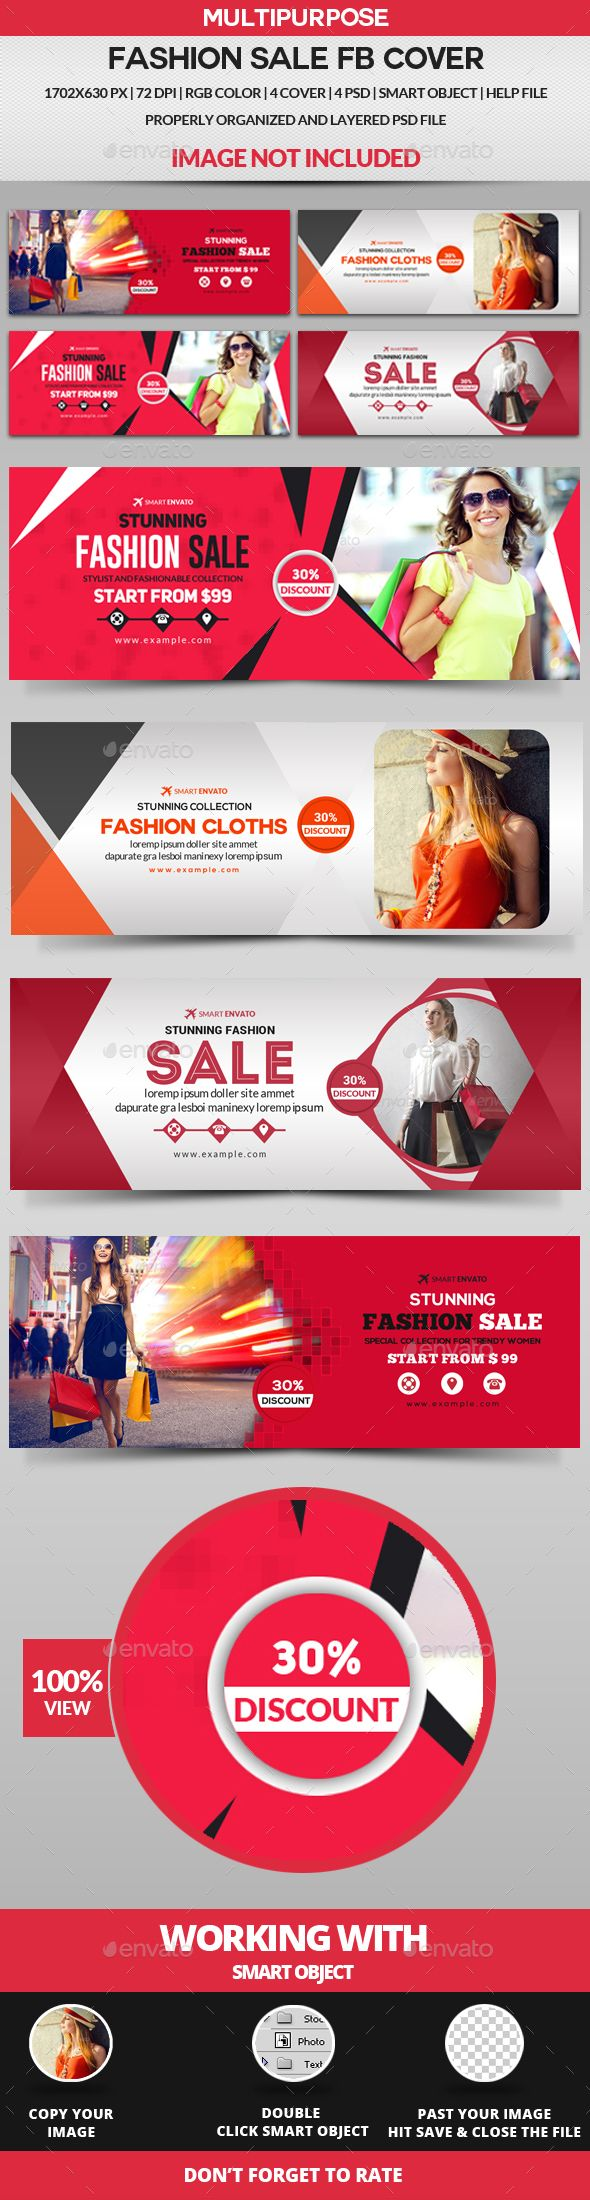 Fashion Sale Facebook Cover - 4 Design Templates PSD. Download here: http://graphicriver.net/item/fashion-sale-facebook-cover-4-design/16920479?ref=ksioks